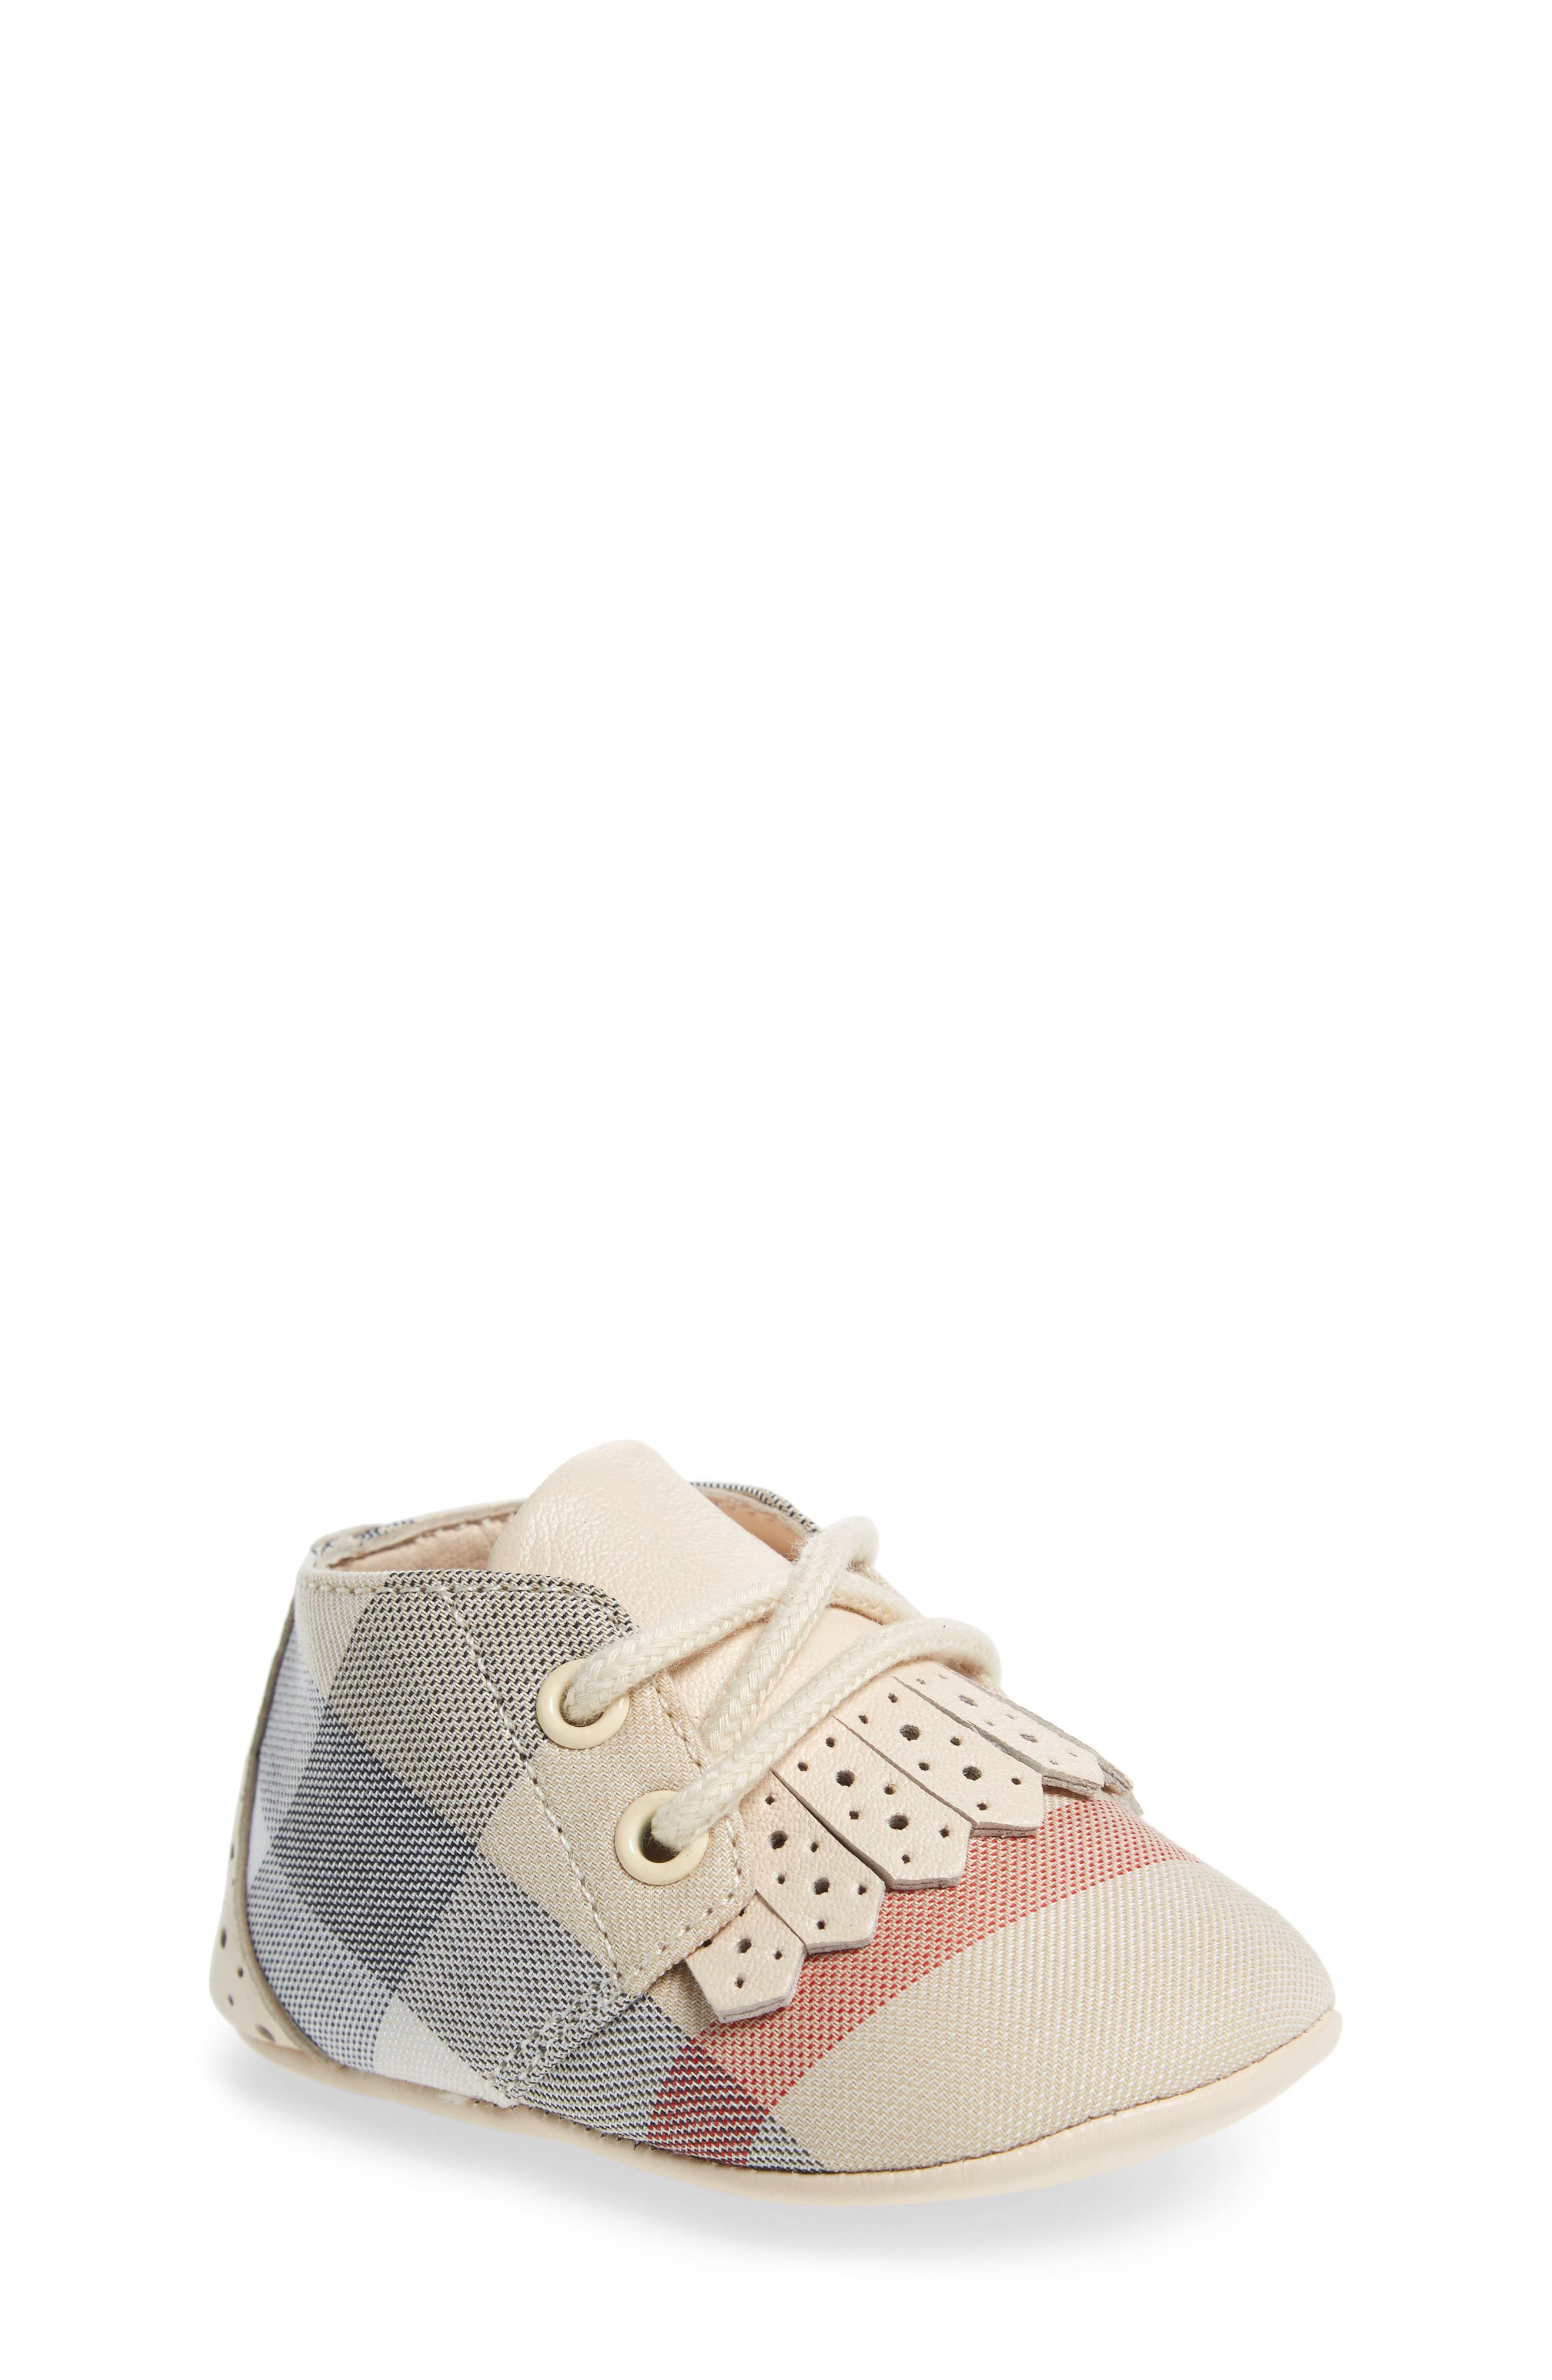 Burberry Tom Lace-Up Crib Shoe (Baby)